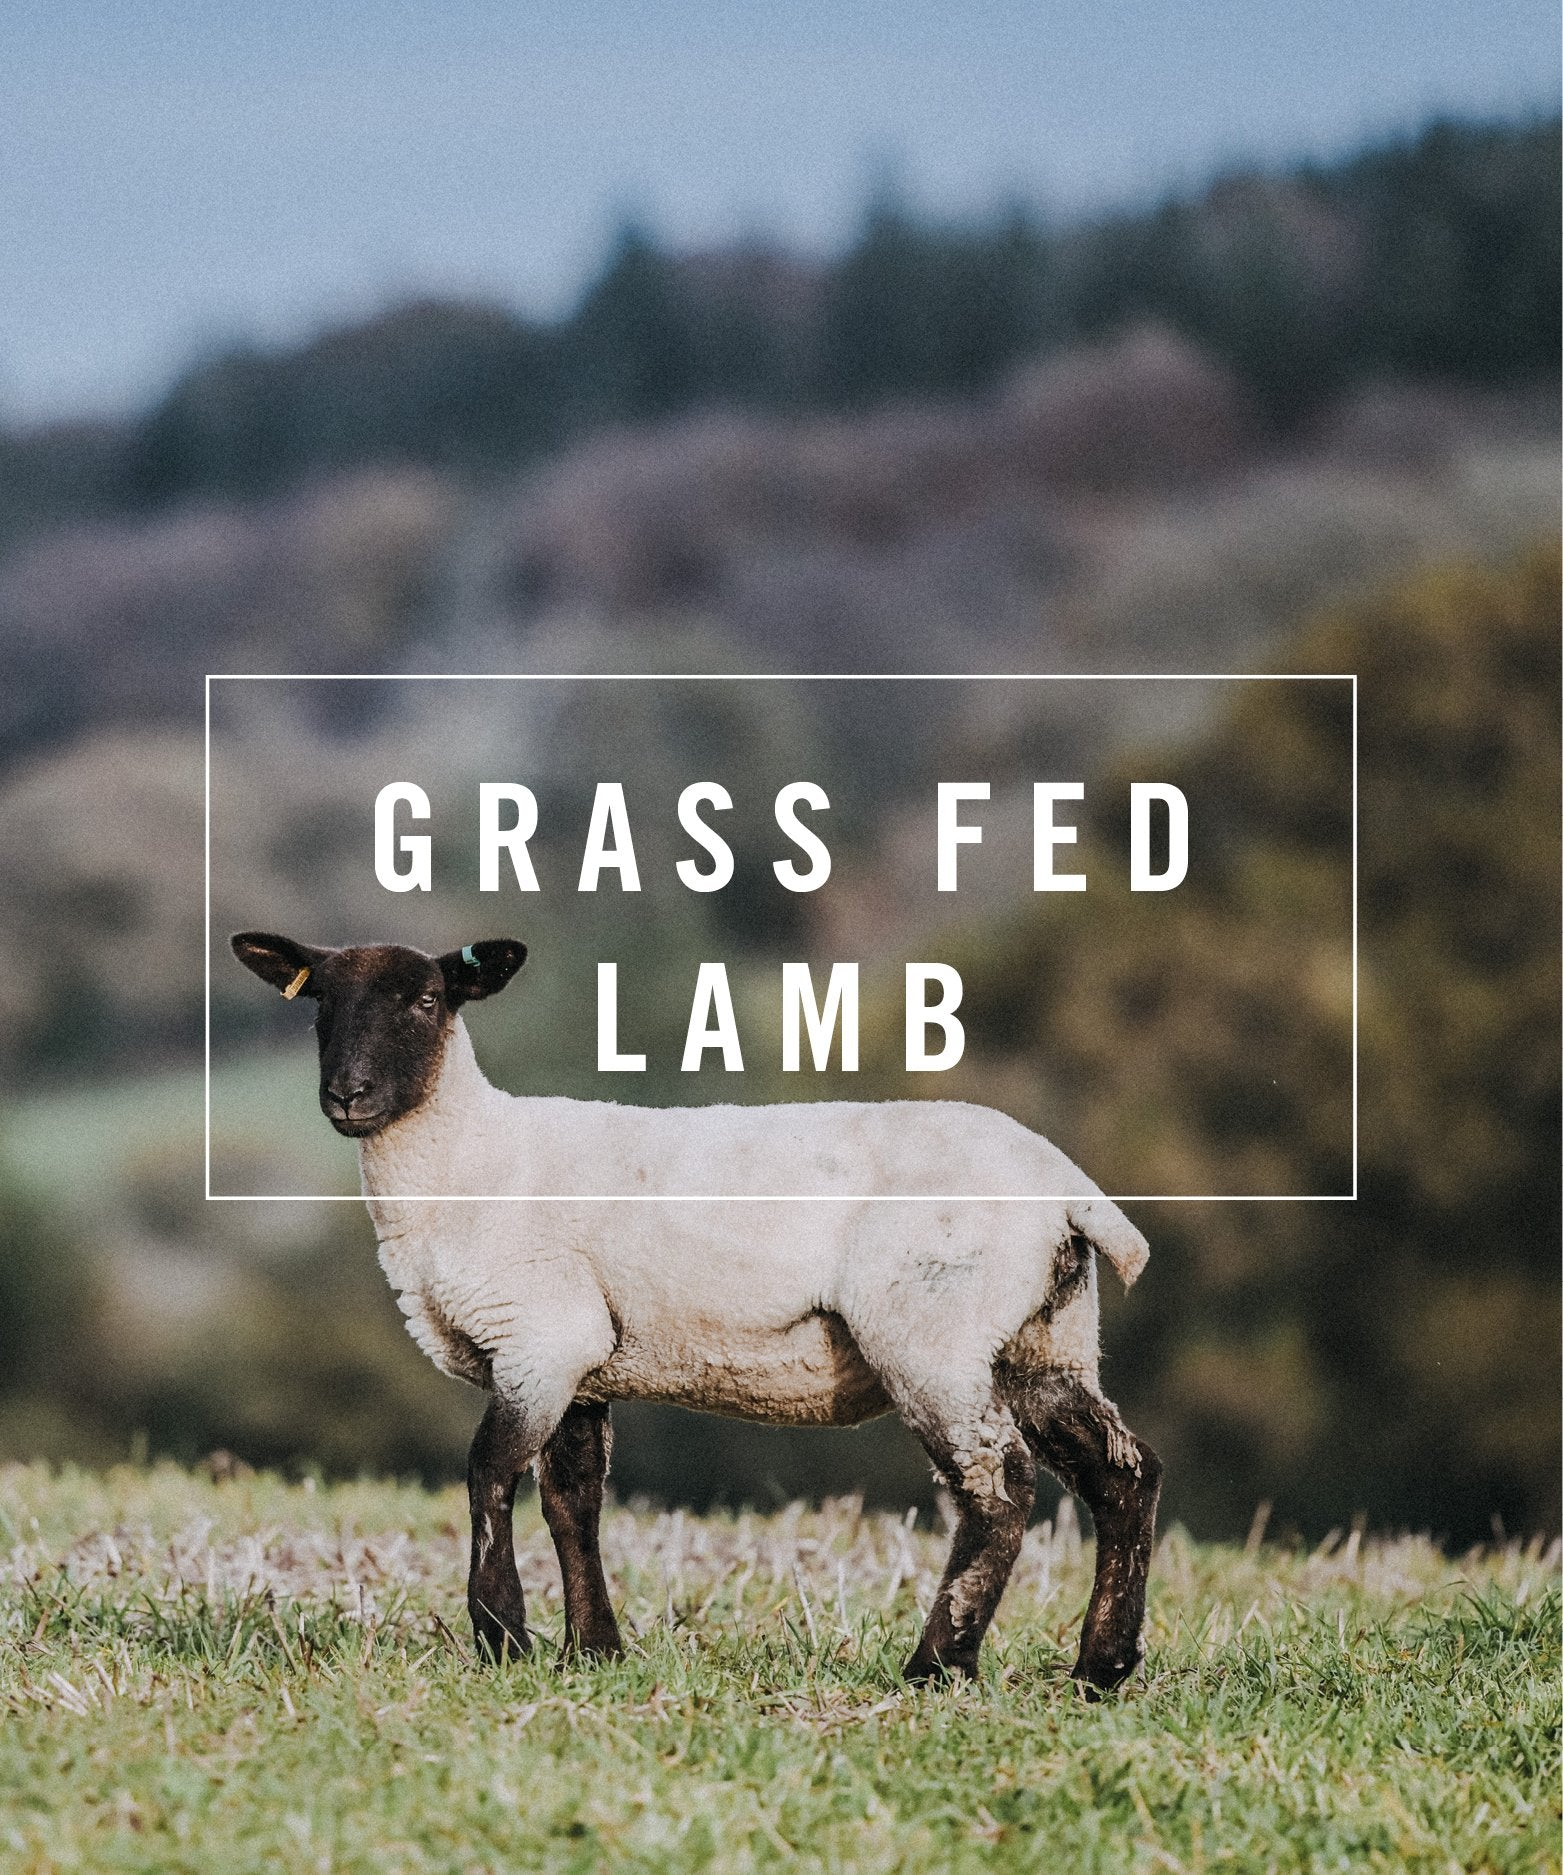 livestock grass fed lamb